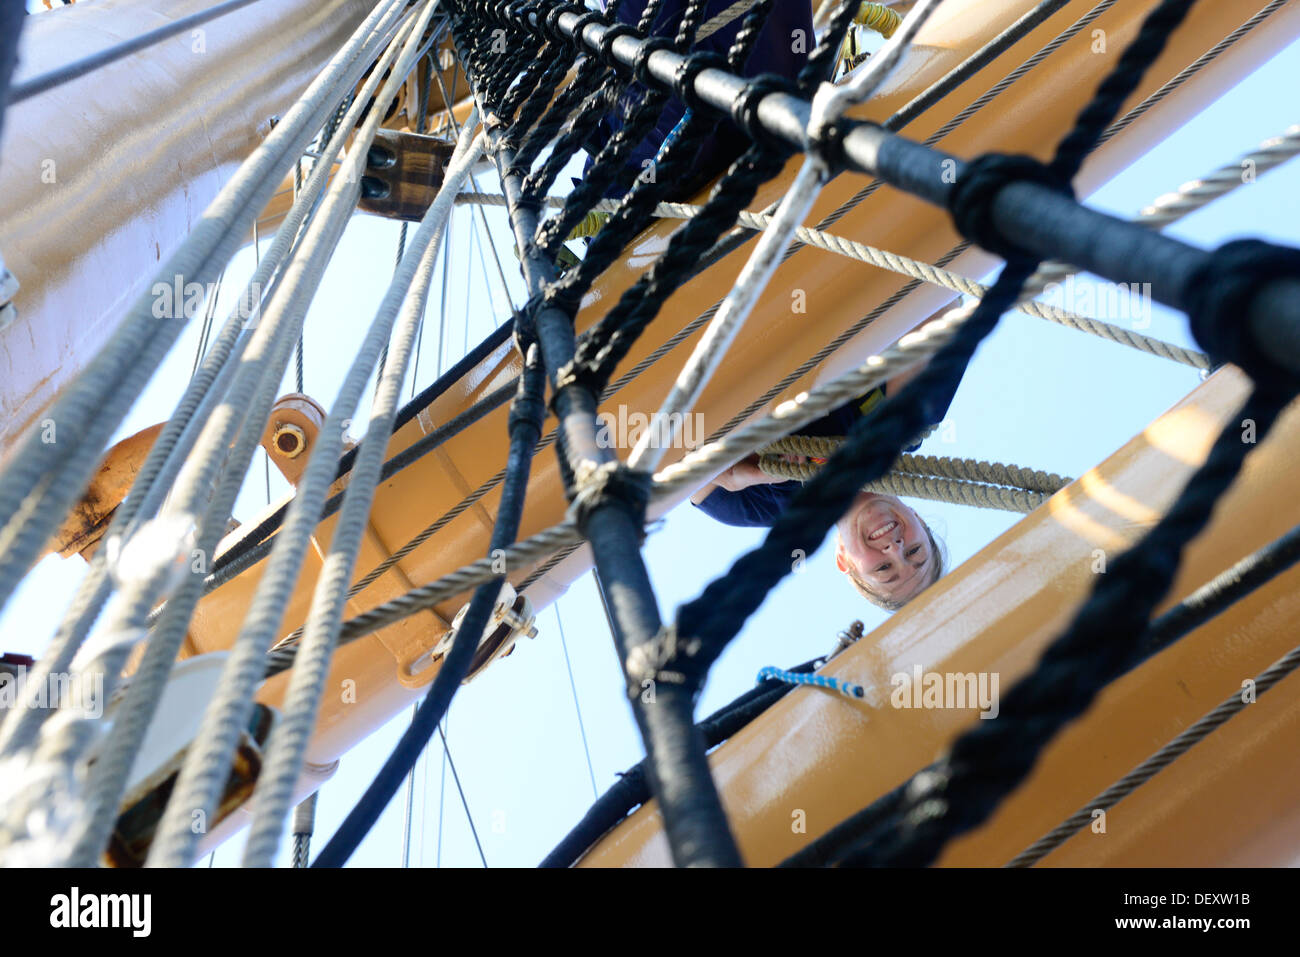 Petty Officer 3rd Class Shelbie Smart, a boatswain's mate aboard the Coast Guard Barque Eagle, prepares to climb Stock Photo